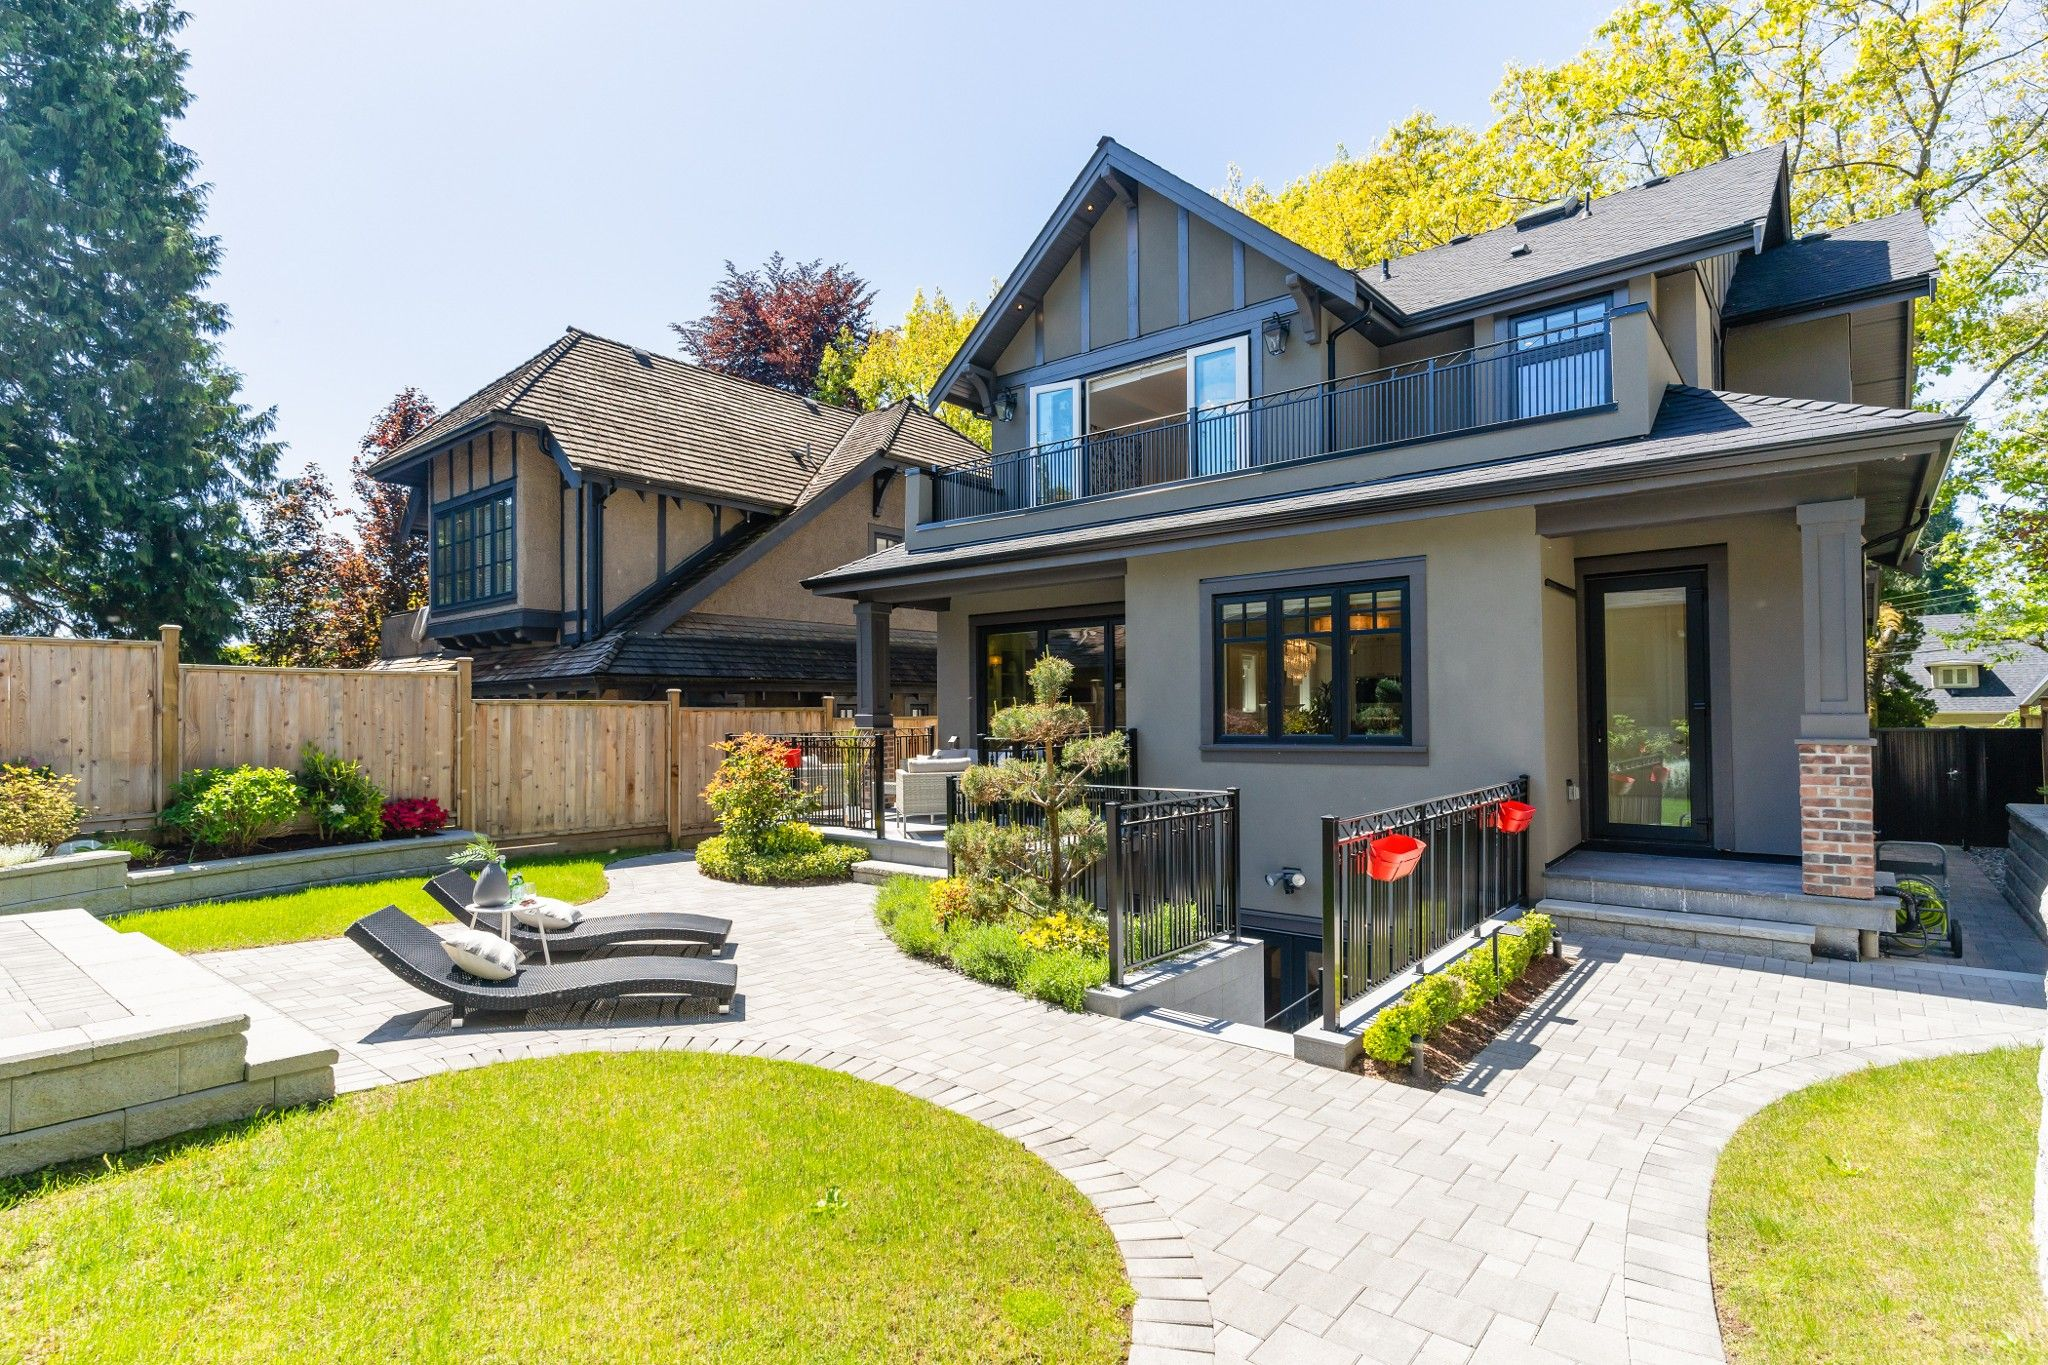 Photo 47: Photos: 5756 ALMA STREET in VANCOUVER: Southlands House for sale (Vancouver West)  : MLS®# R2588229